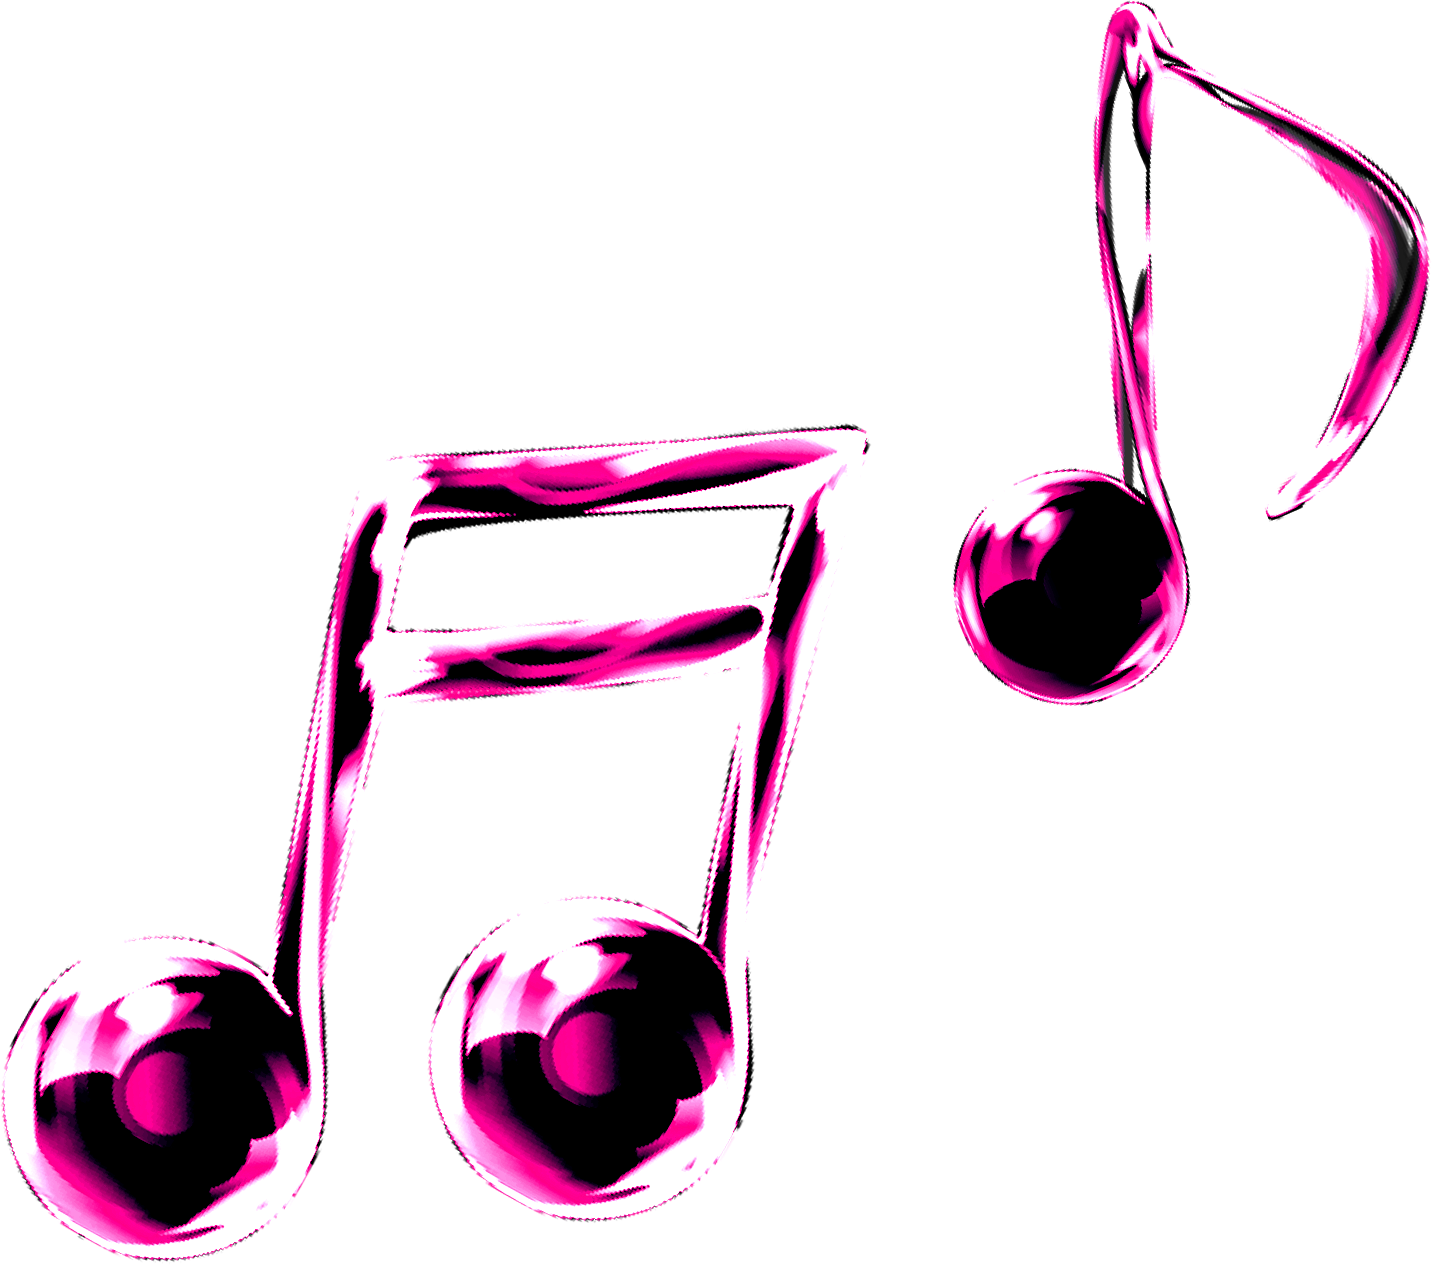 Some nice notes music clipart note music clipart note record music